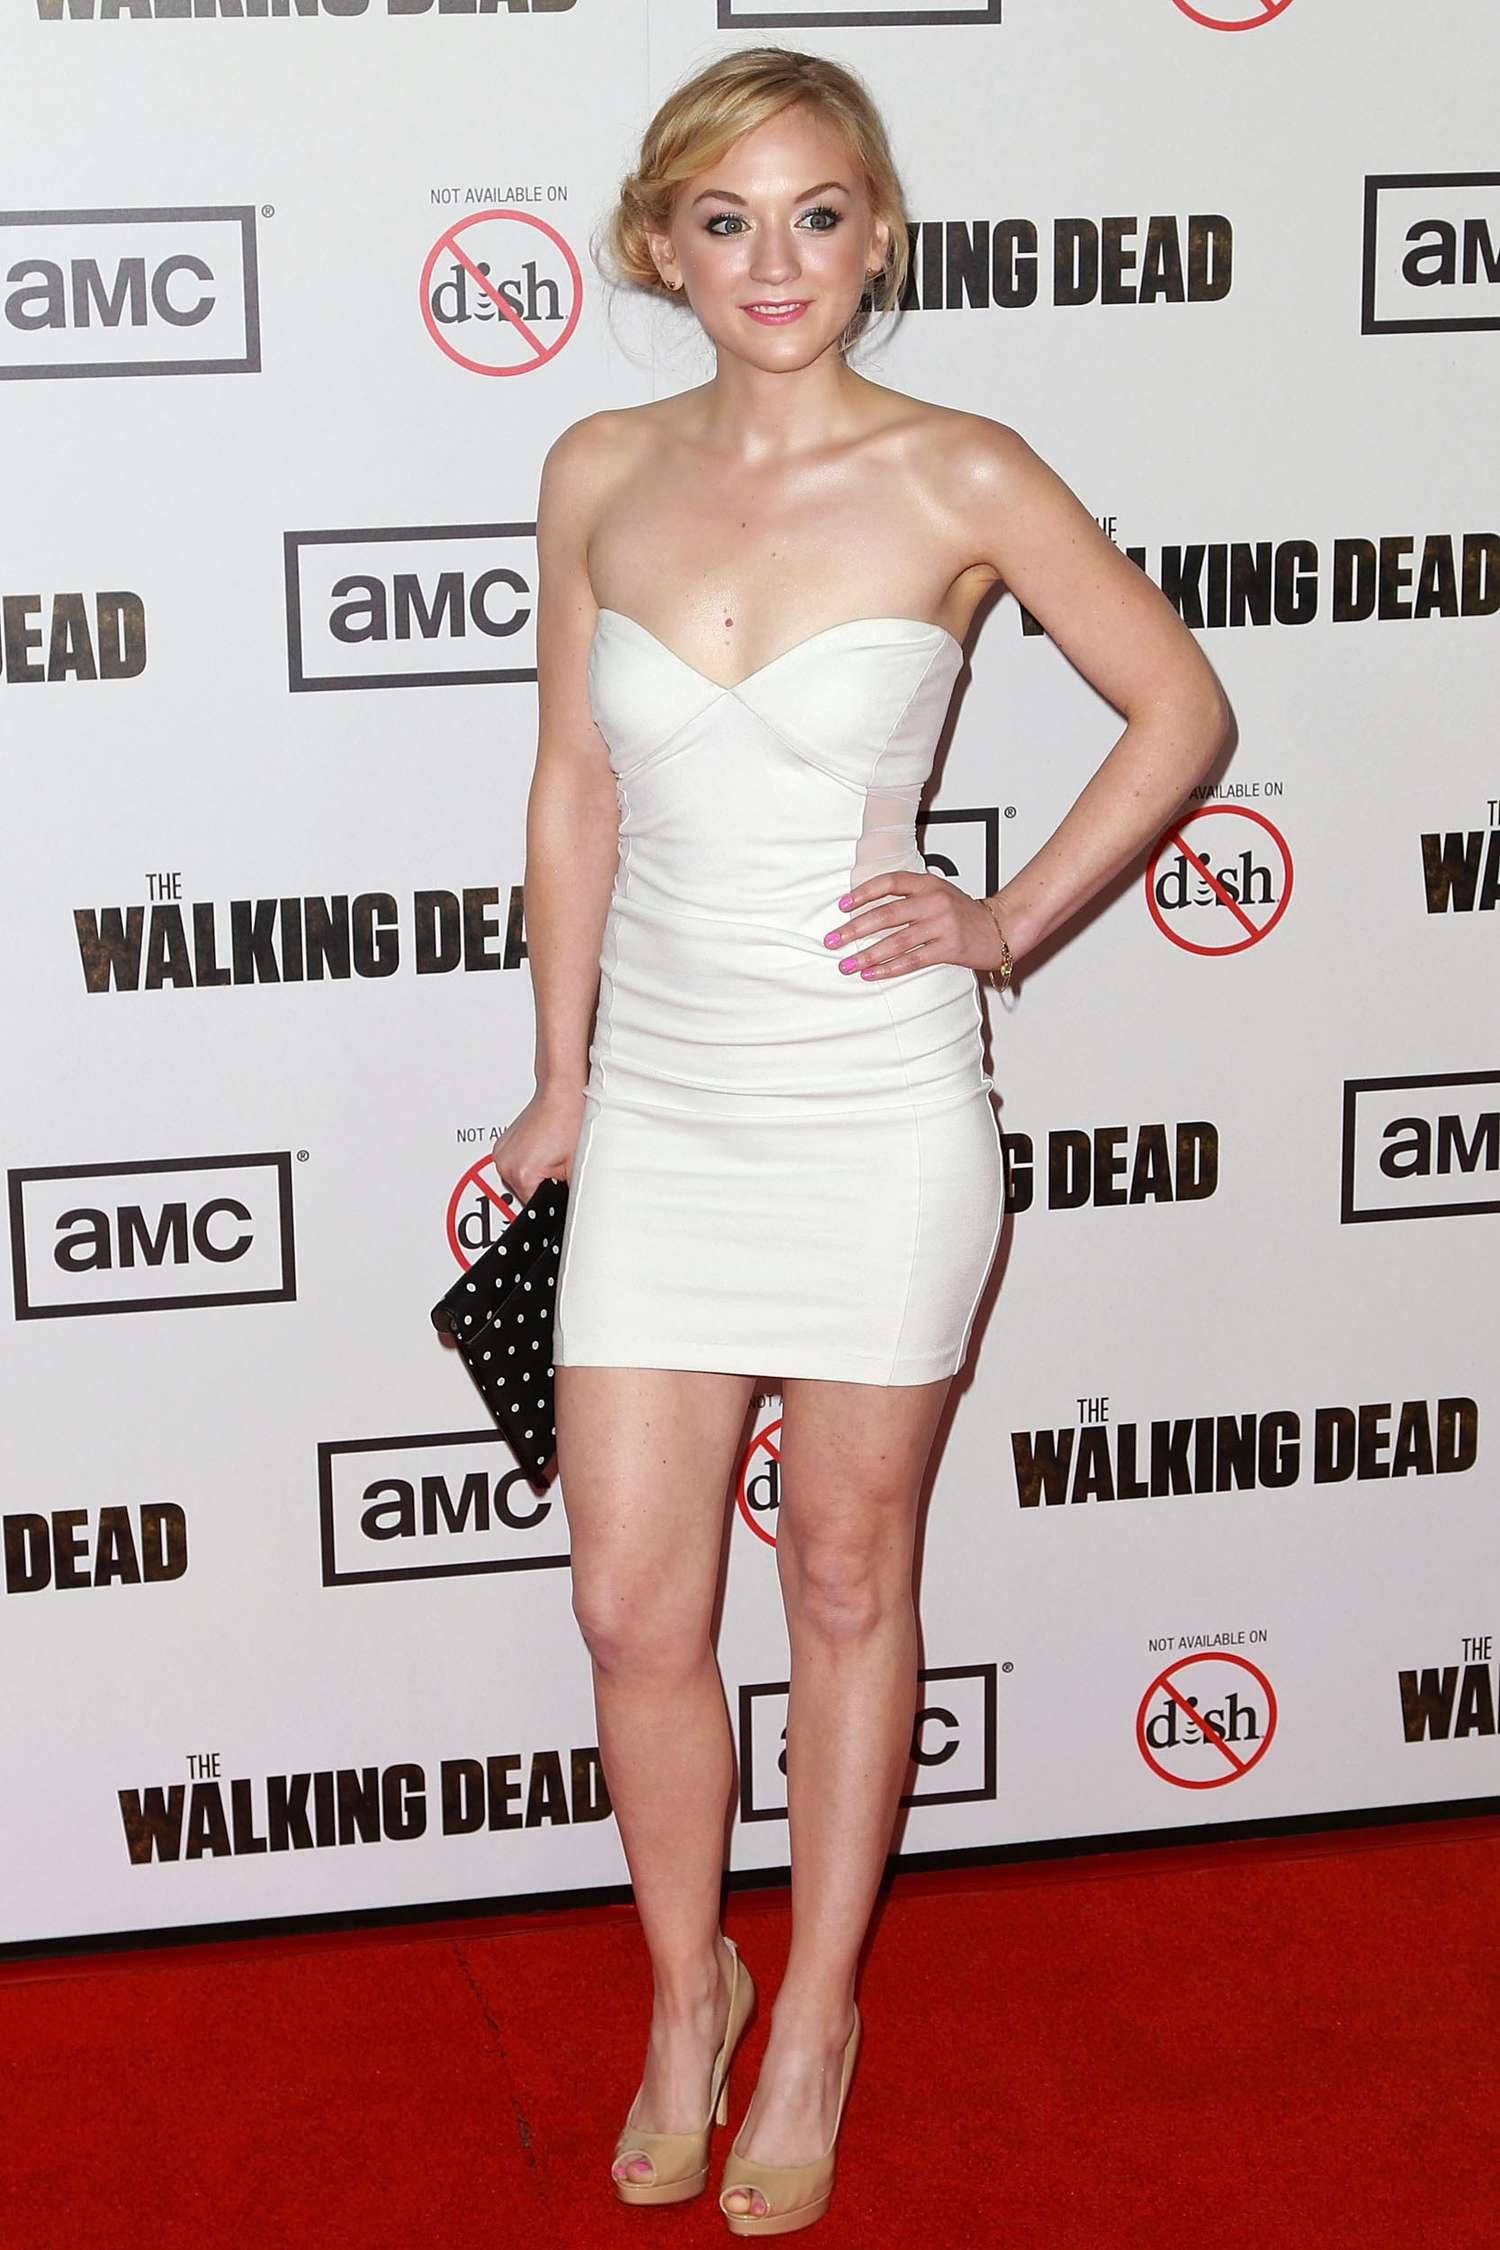 emily kinney ageemily kinney - be good, emily kinney norman reedus, emily kinney gif, emily kinney rockstar, emily kinney walking dead, emily kinney аккорды, emily kinney - be good скачать, emily kinney hold on, emily kinney - molly, emily kinney wiki, emily kinney age, emily kinney – this is war, emily kinney be good текст, emily kinney 2016, emily kinney in, emily kinney birthday cake, emily kinney music, emily kinney boyfriend, emily kinney weapons, emily kinney chords